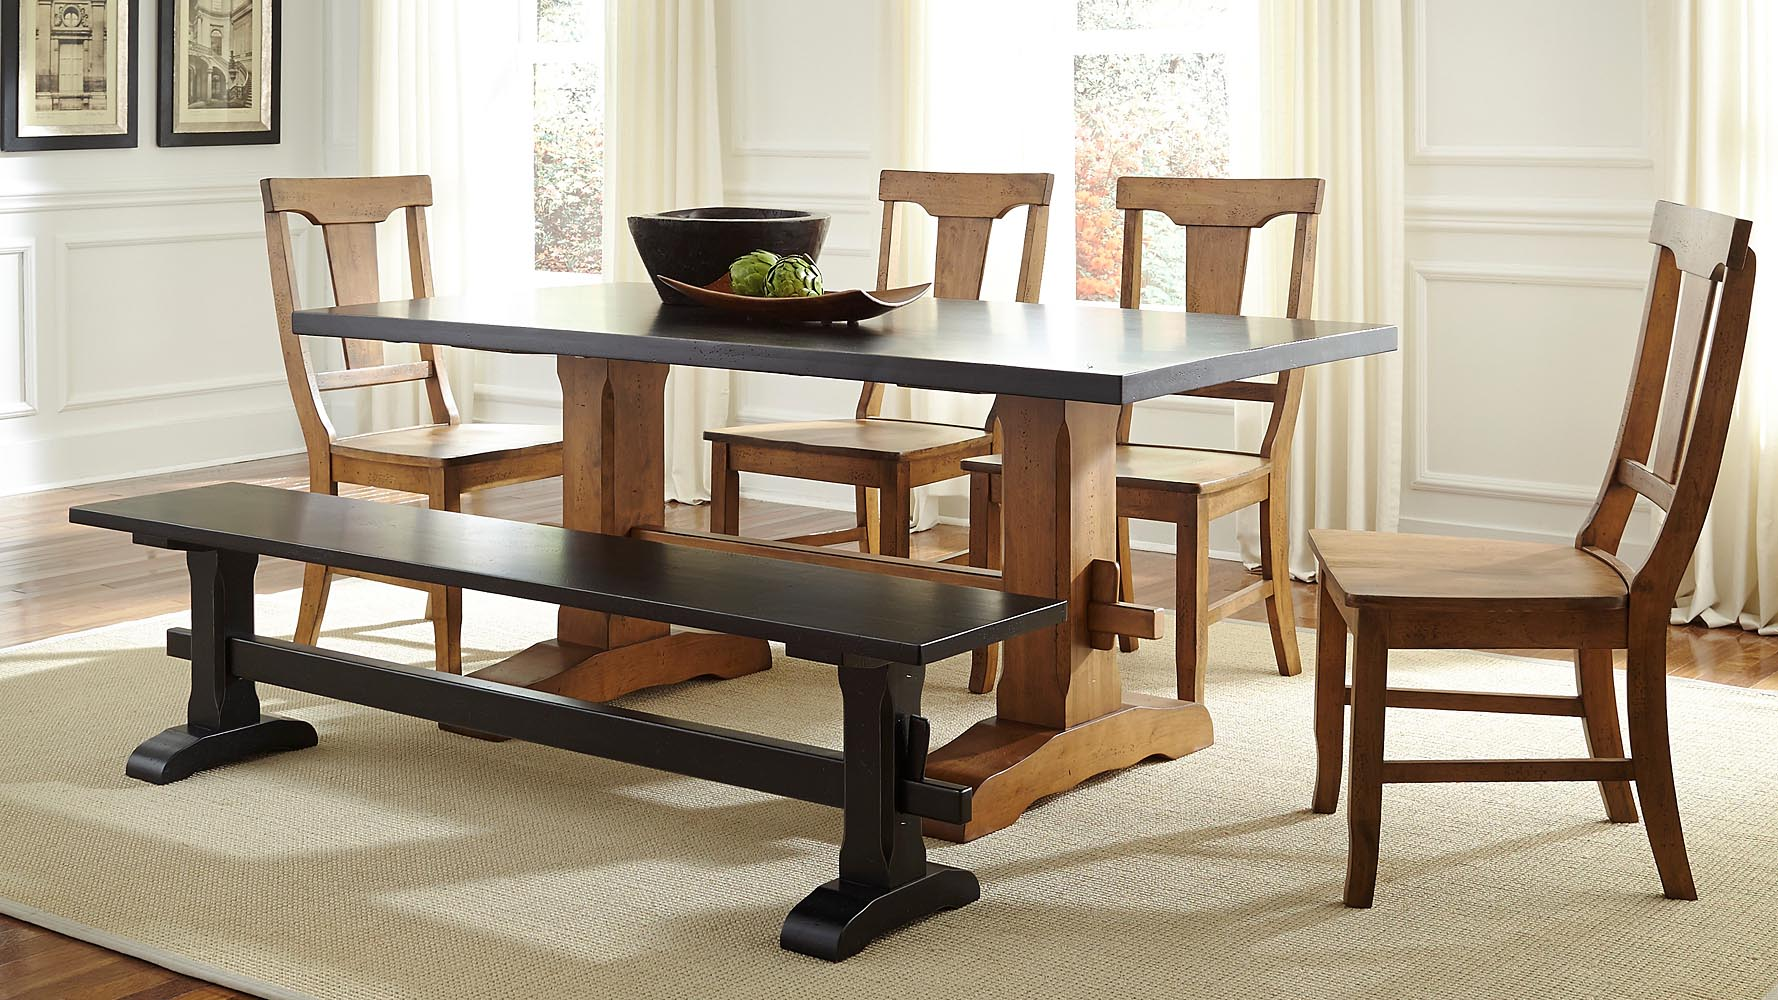 Unfinished Furniture Outlet Specials. Solid Wood Dining Room